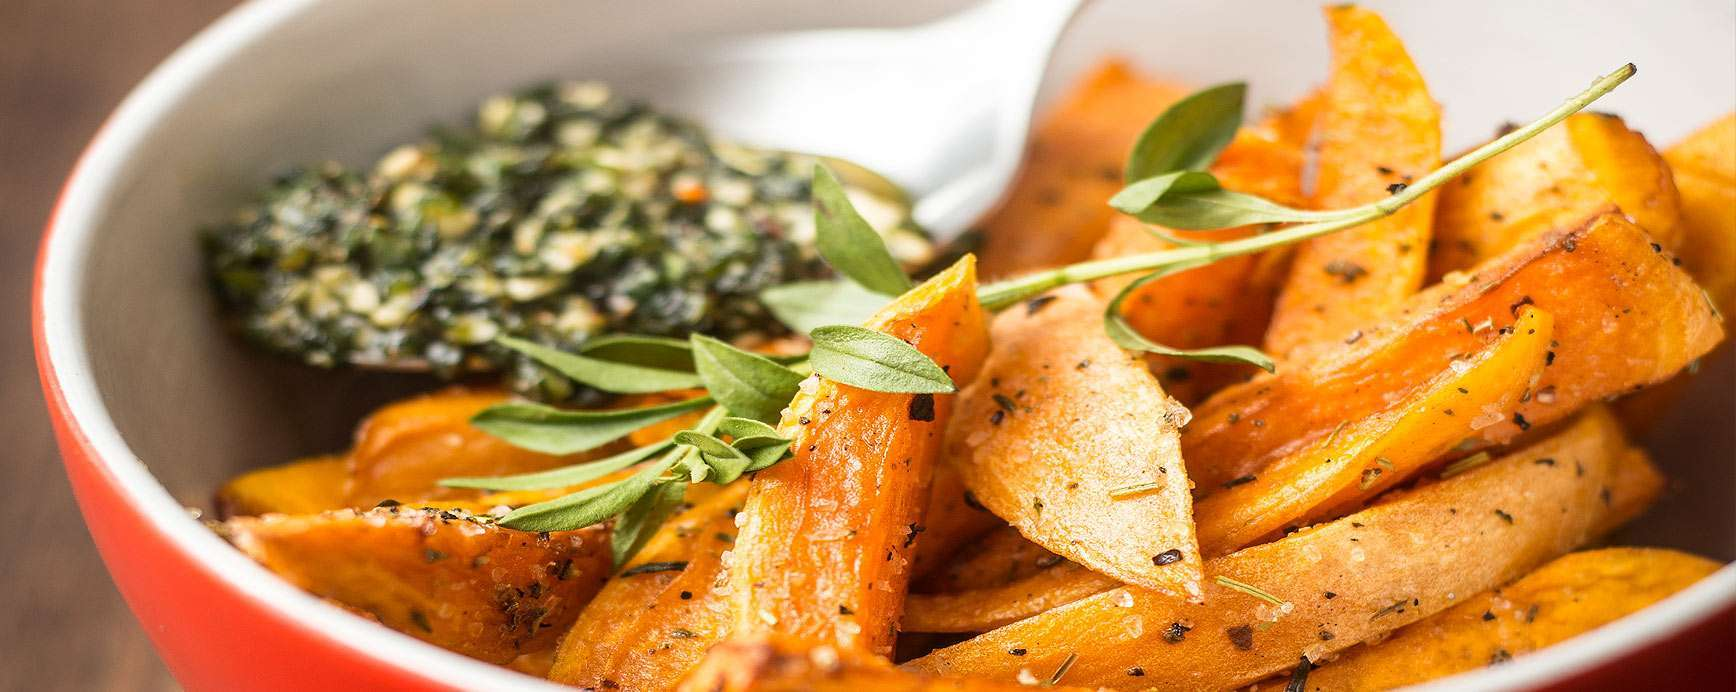 Sweet potato fries with a dip of fresh and dried herbs